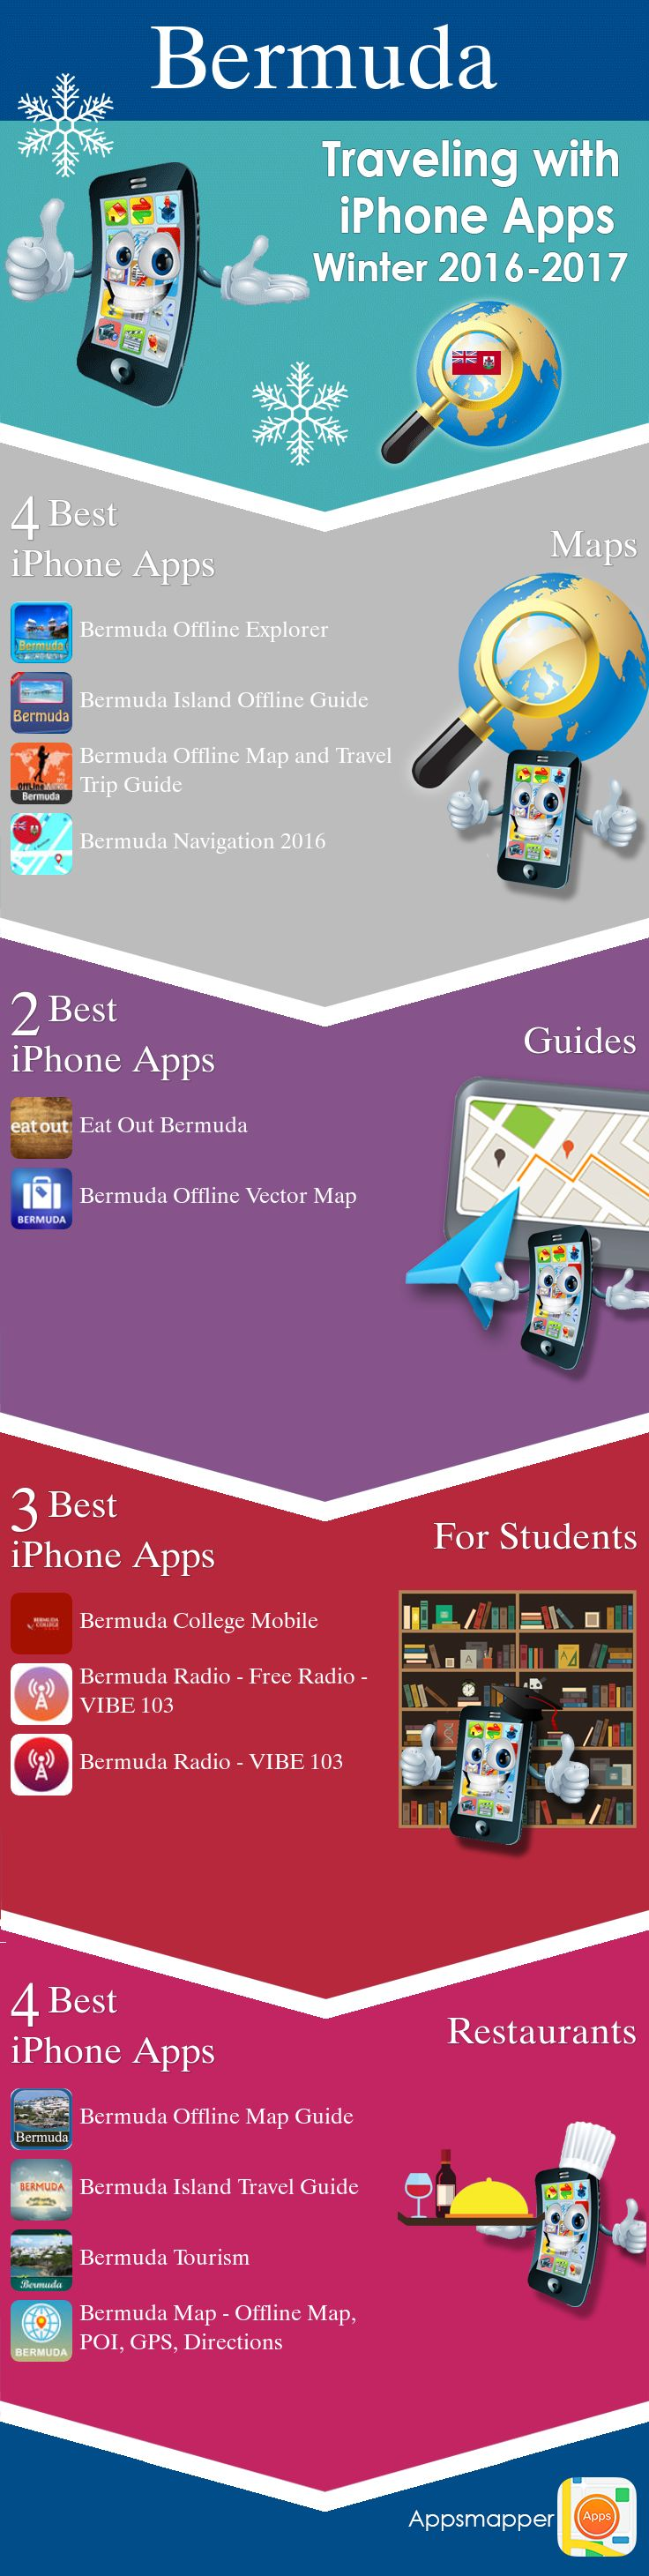 Bermuda iPhone apps: Travel Guides, Maps, Transportation, Biking, Museums, Parking, Sport and apps for Students.